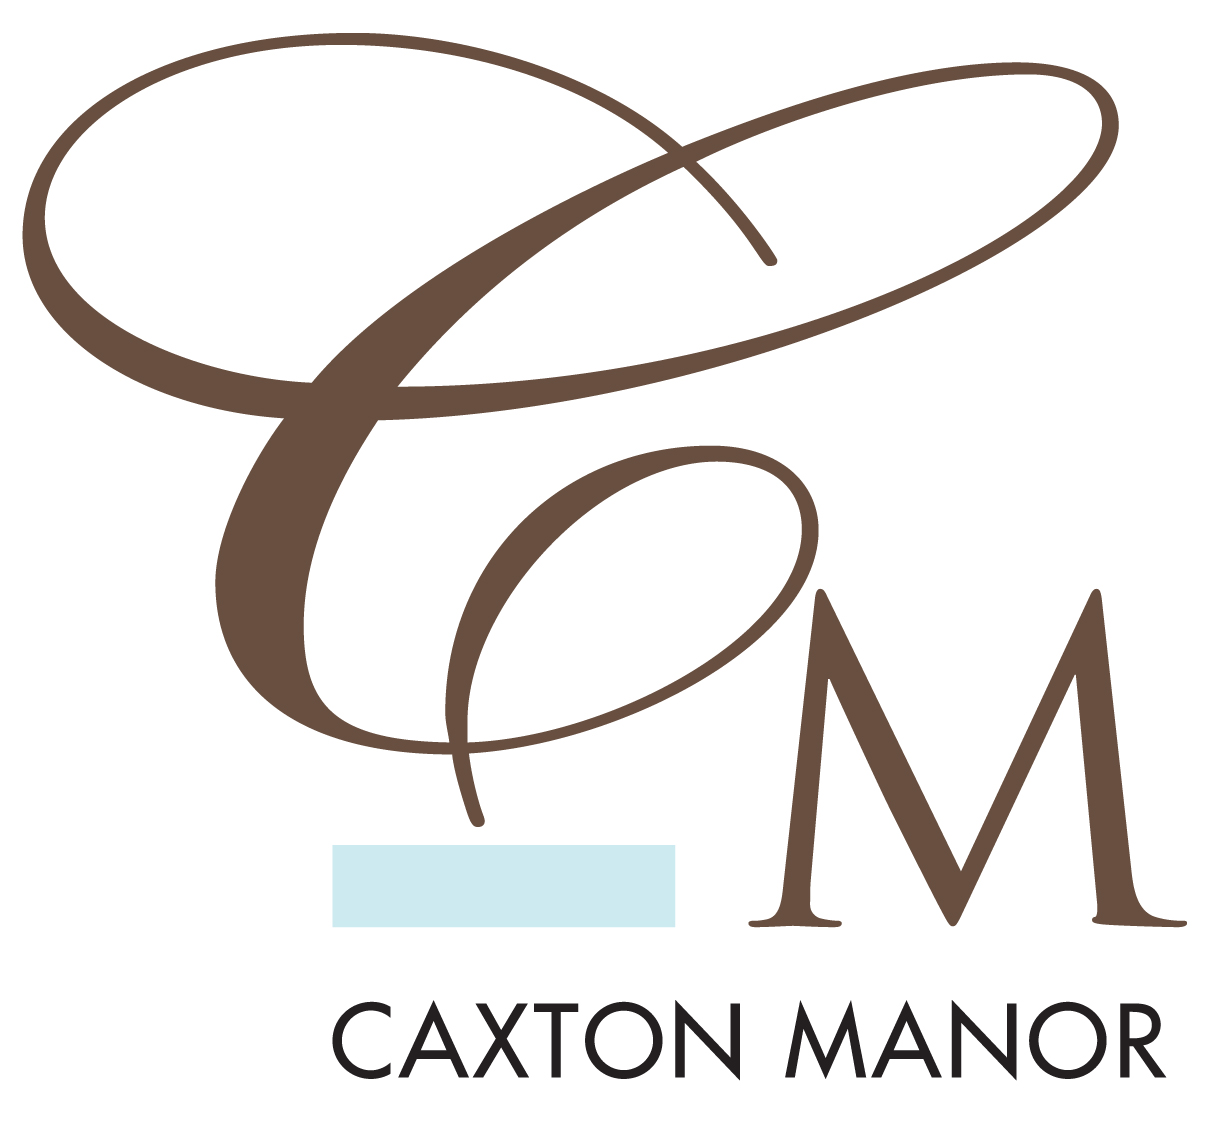 Caxton Manor